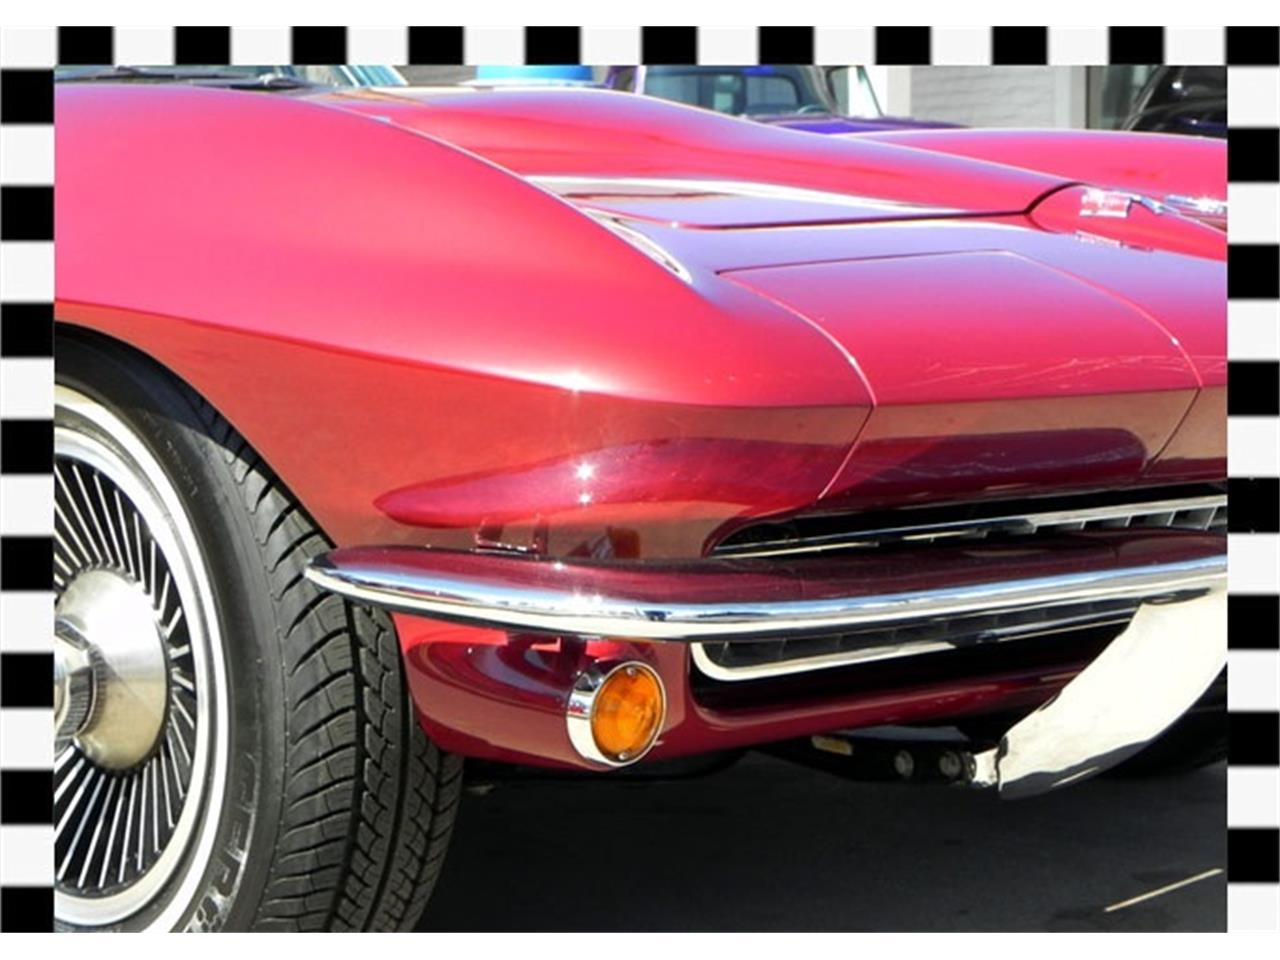 Large Picture of Classic '66 Chevrolet Corvette located in Alberta - $99,900.00 Offered by a Private Seller - FLDD